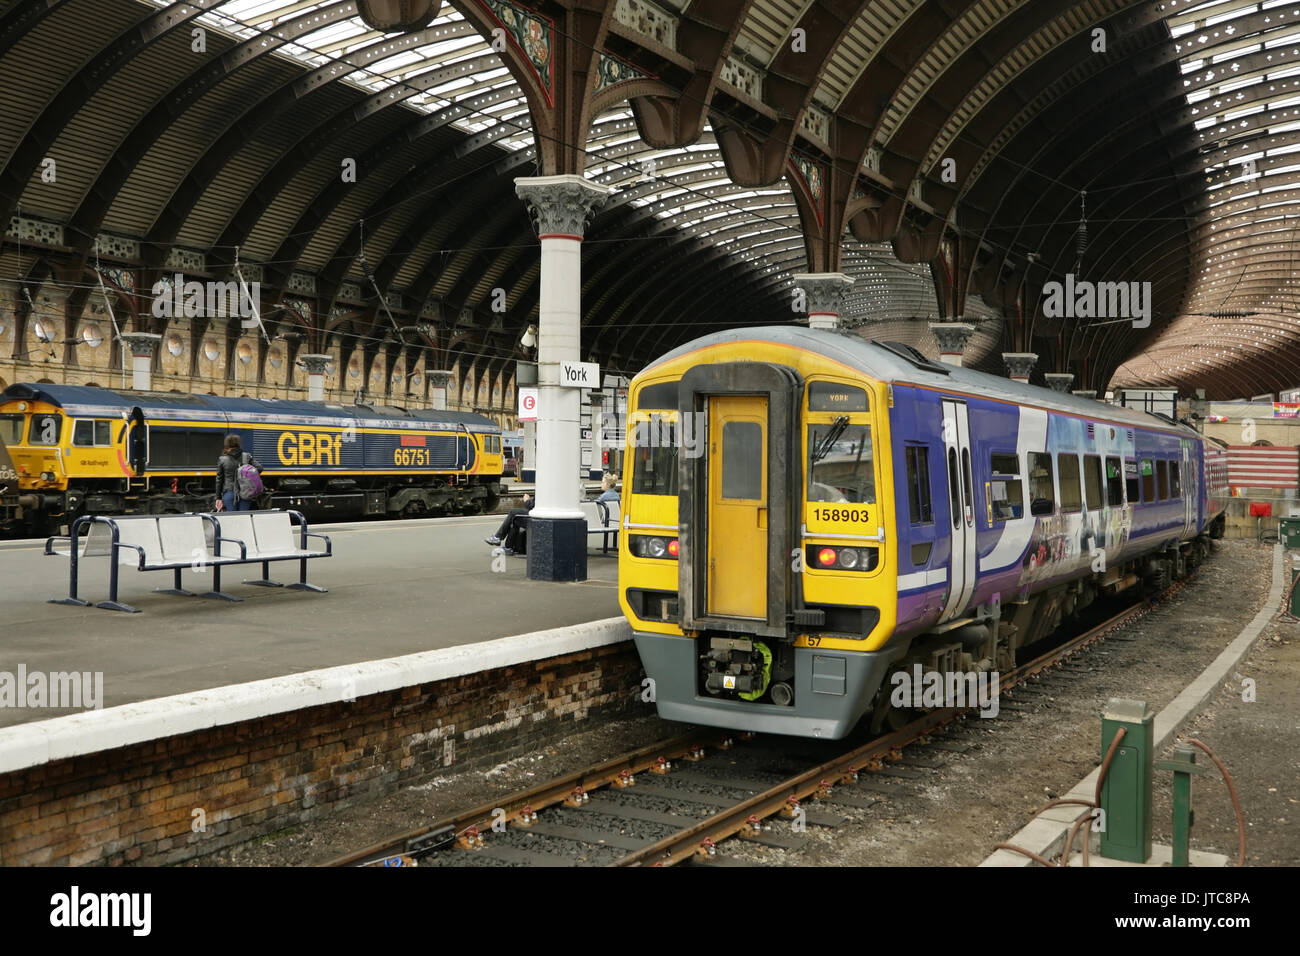 Northern rail class 158 diesel multiple unit standing at York station, UK while GBRF class 66 loco 66751 passes with northbound coal train. - Stock Image